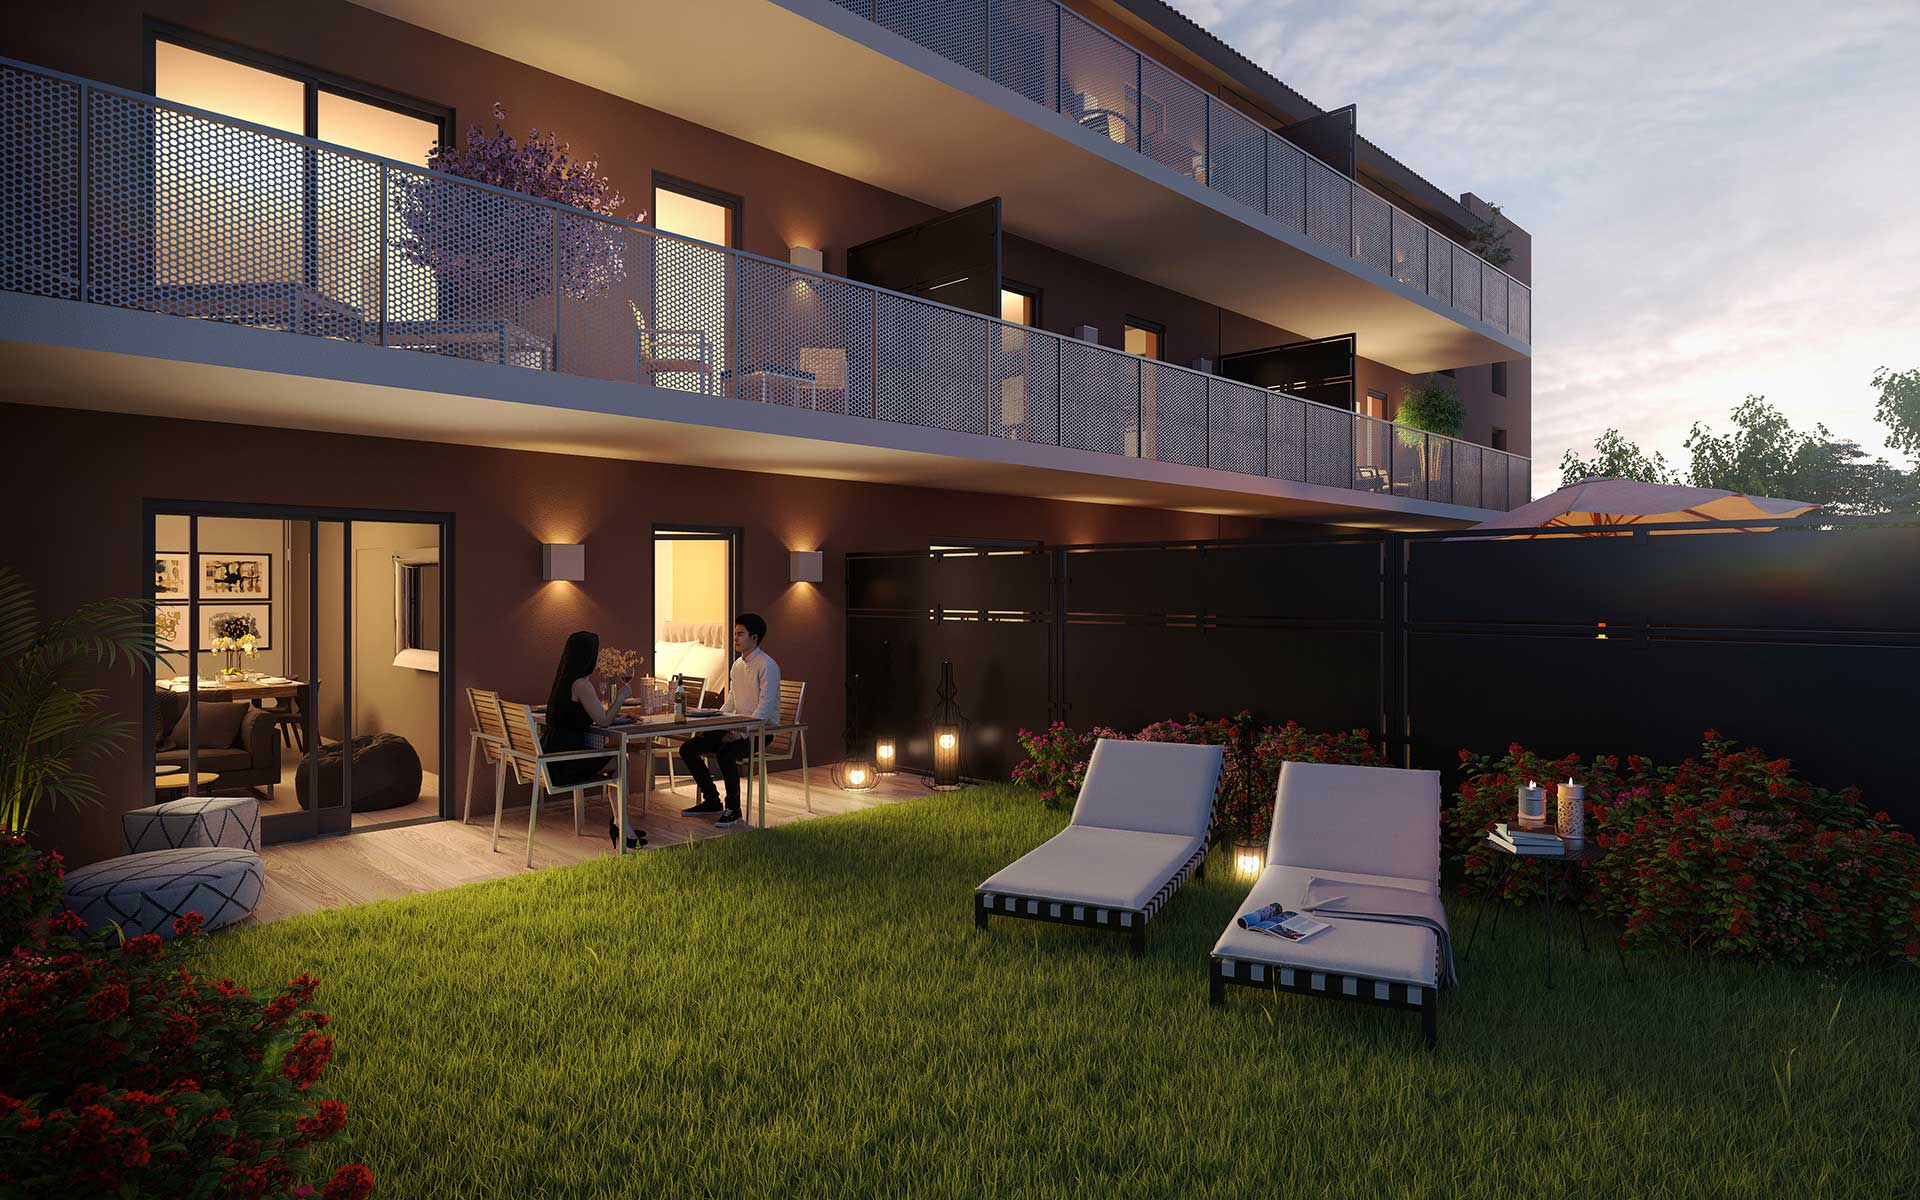 3D Perspective of a building and a night garden - real estate promotion.